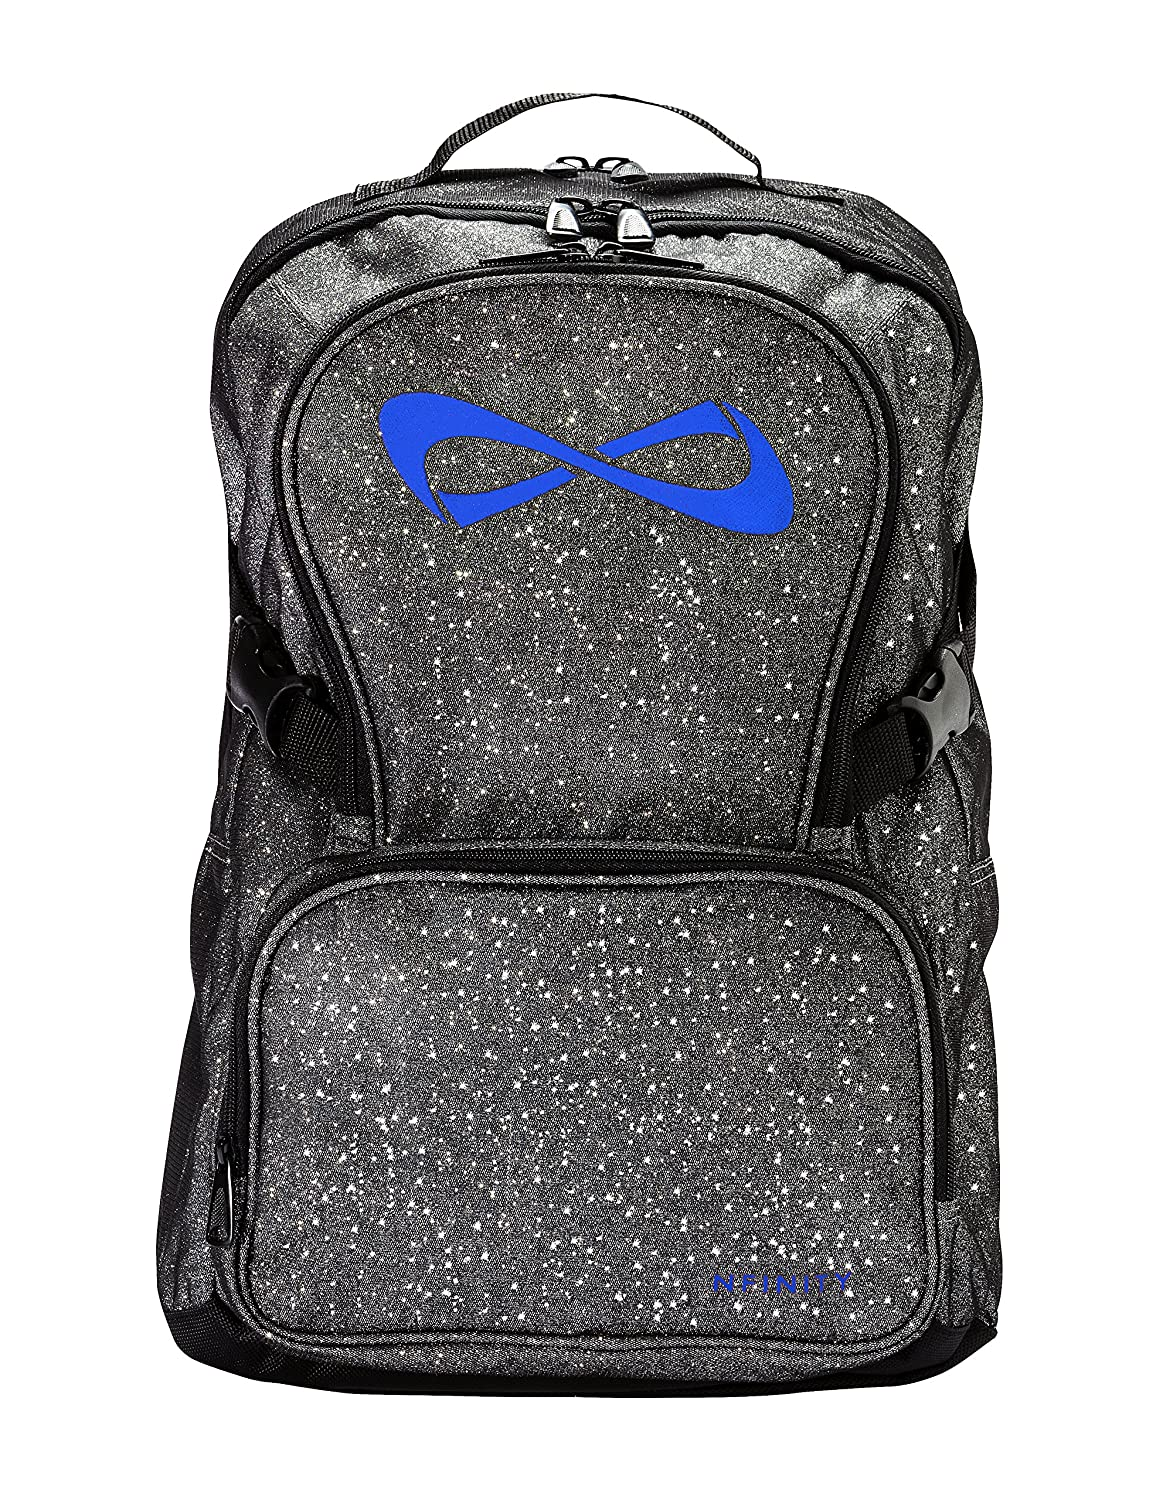 52cd7d25a1 Nfinity Backpack with Logo durable modeling - cowzone.com.mx